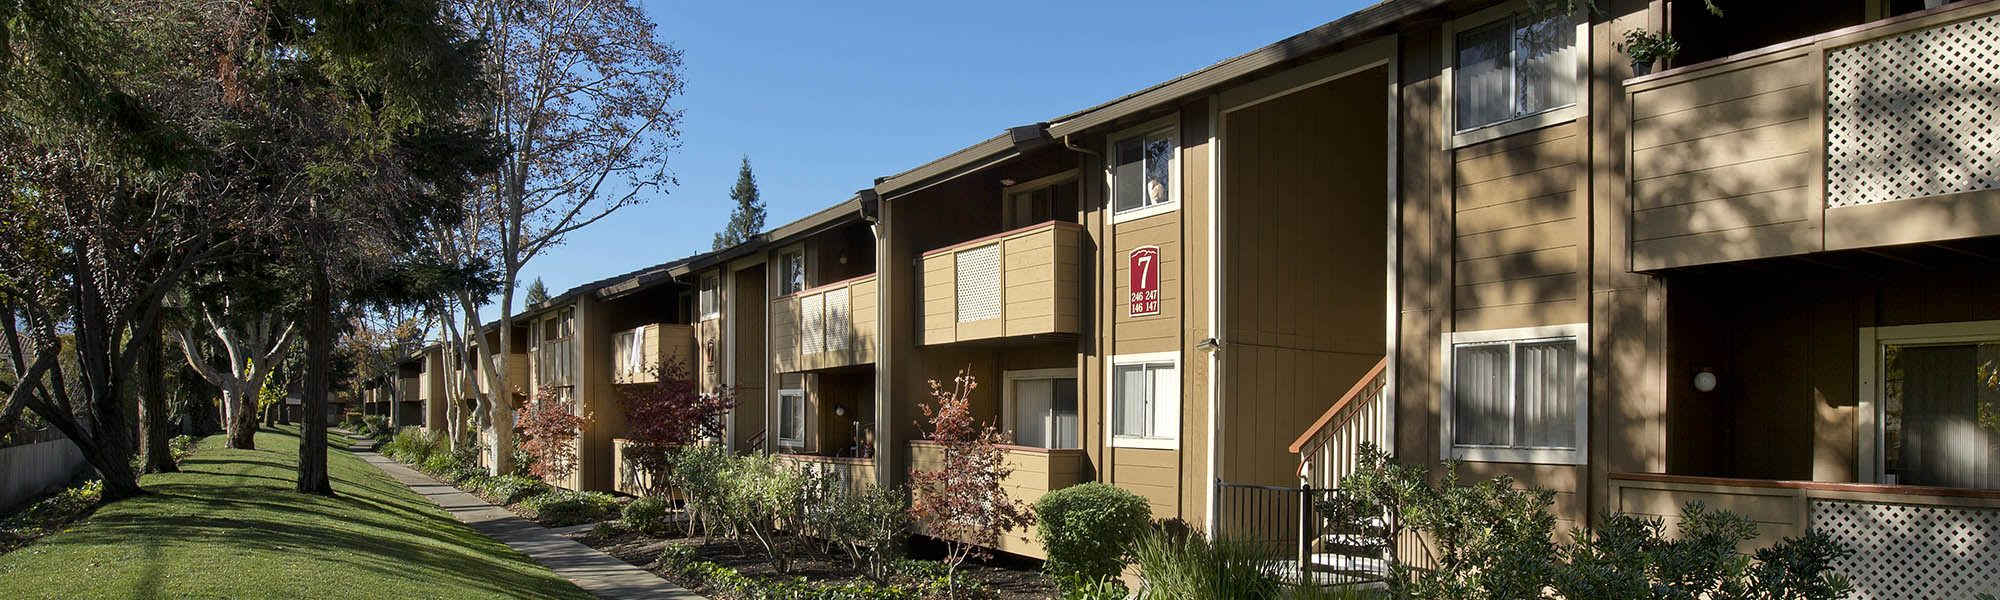 Read reviews of Park Ridge Apartment Homes on our website